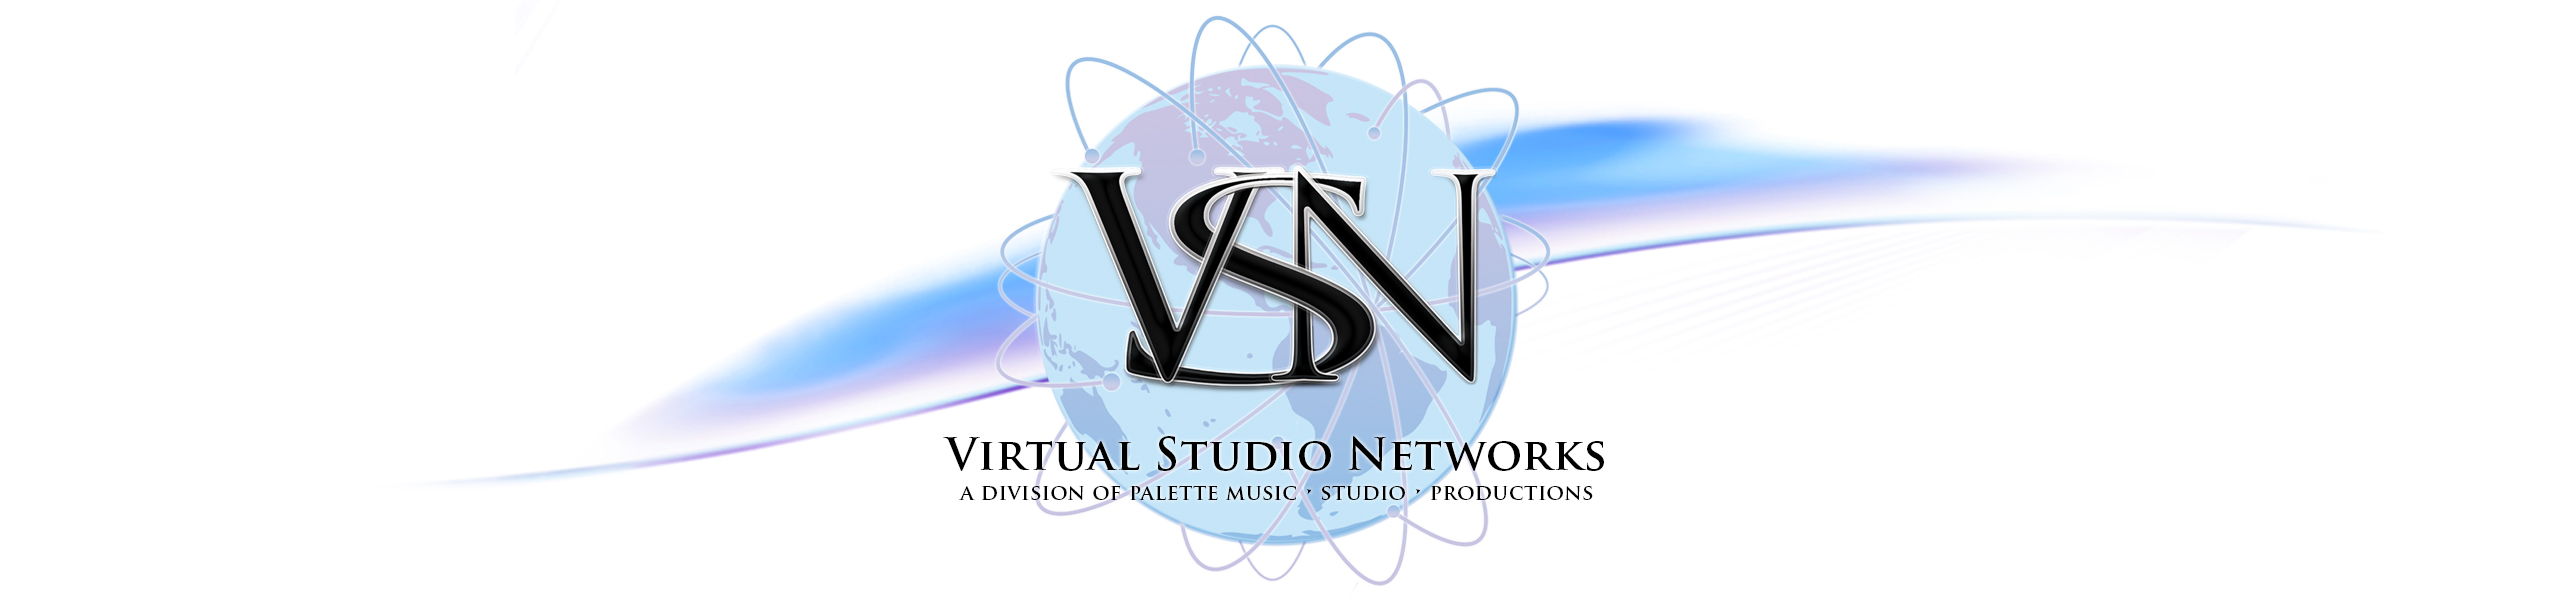 Virtual Studio Networks-VSN-Jeff Silverman_Palette Music Studio Productions